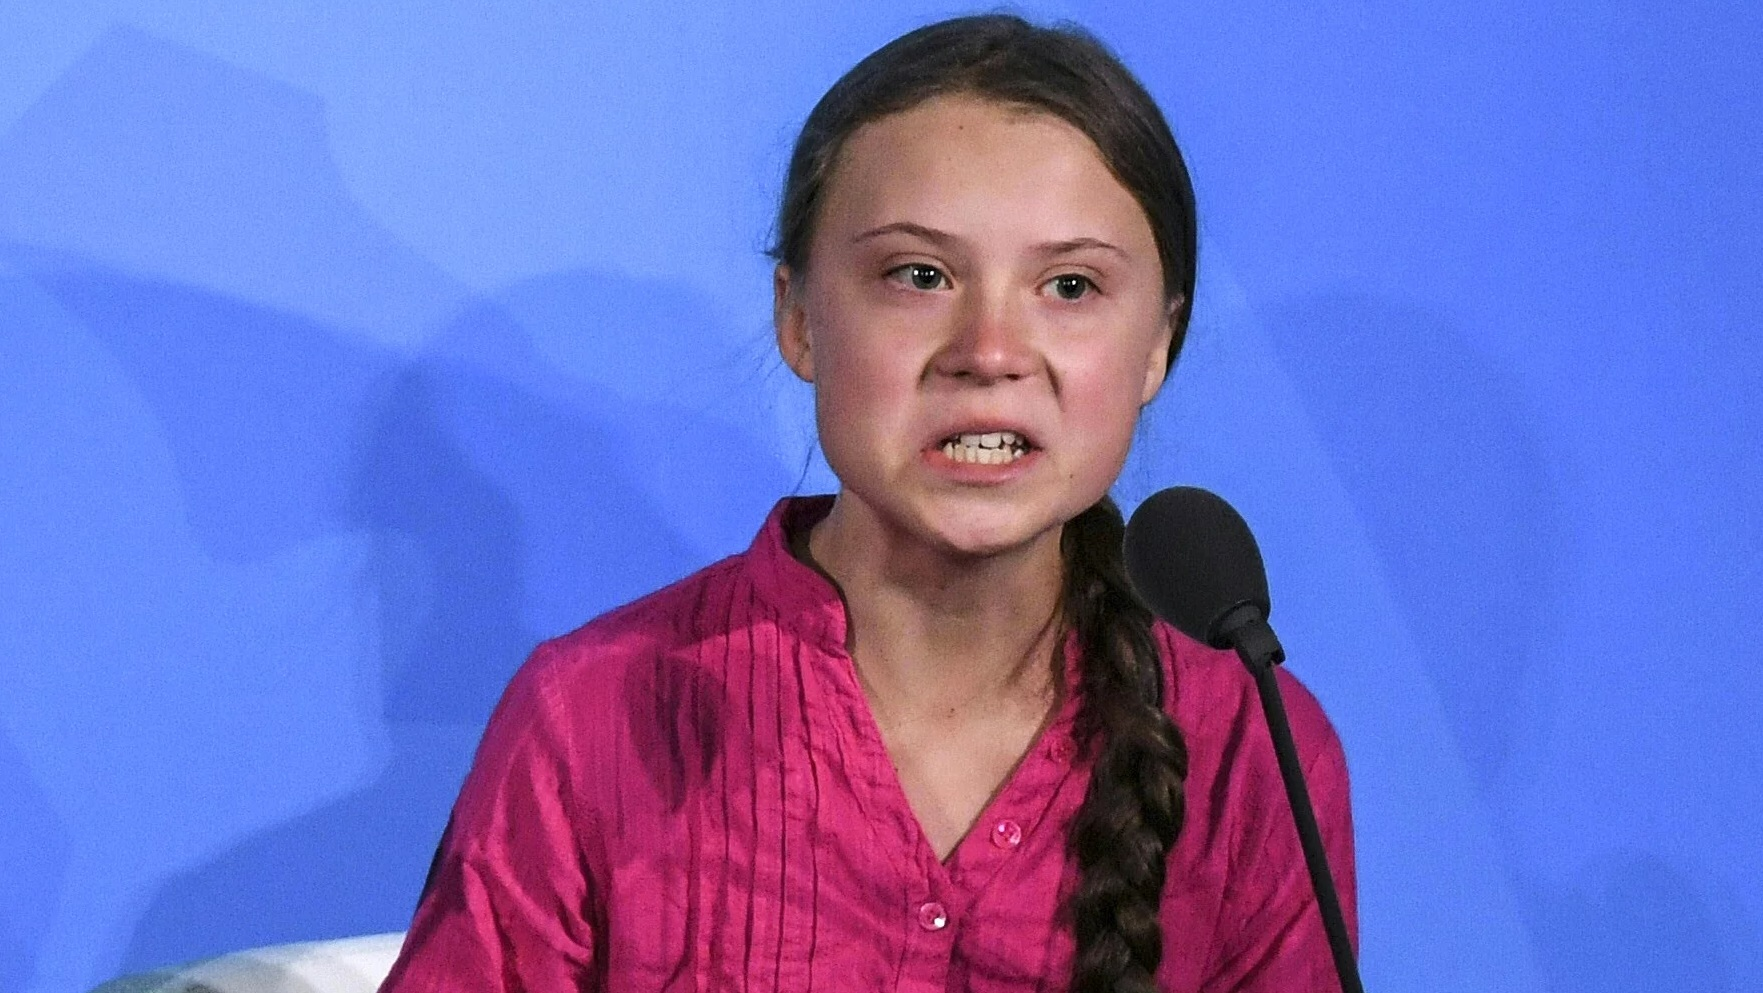 Train company to get dressing down from German authorities after embarrassing Greta Thunberg